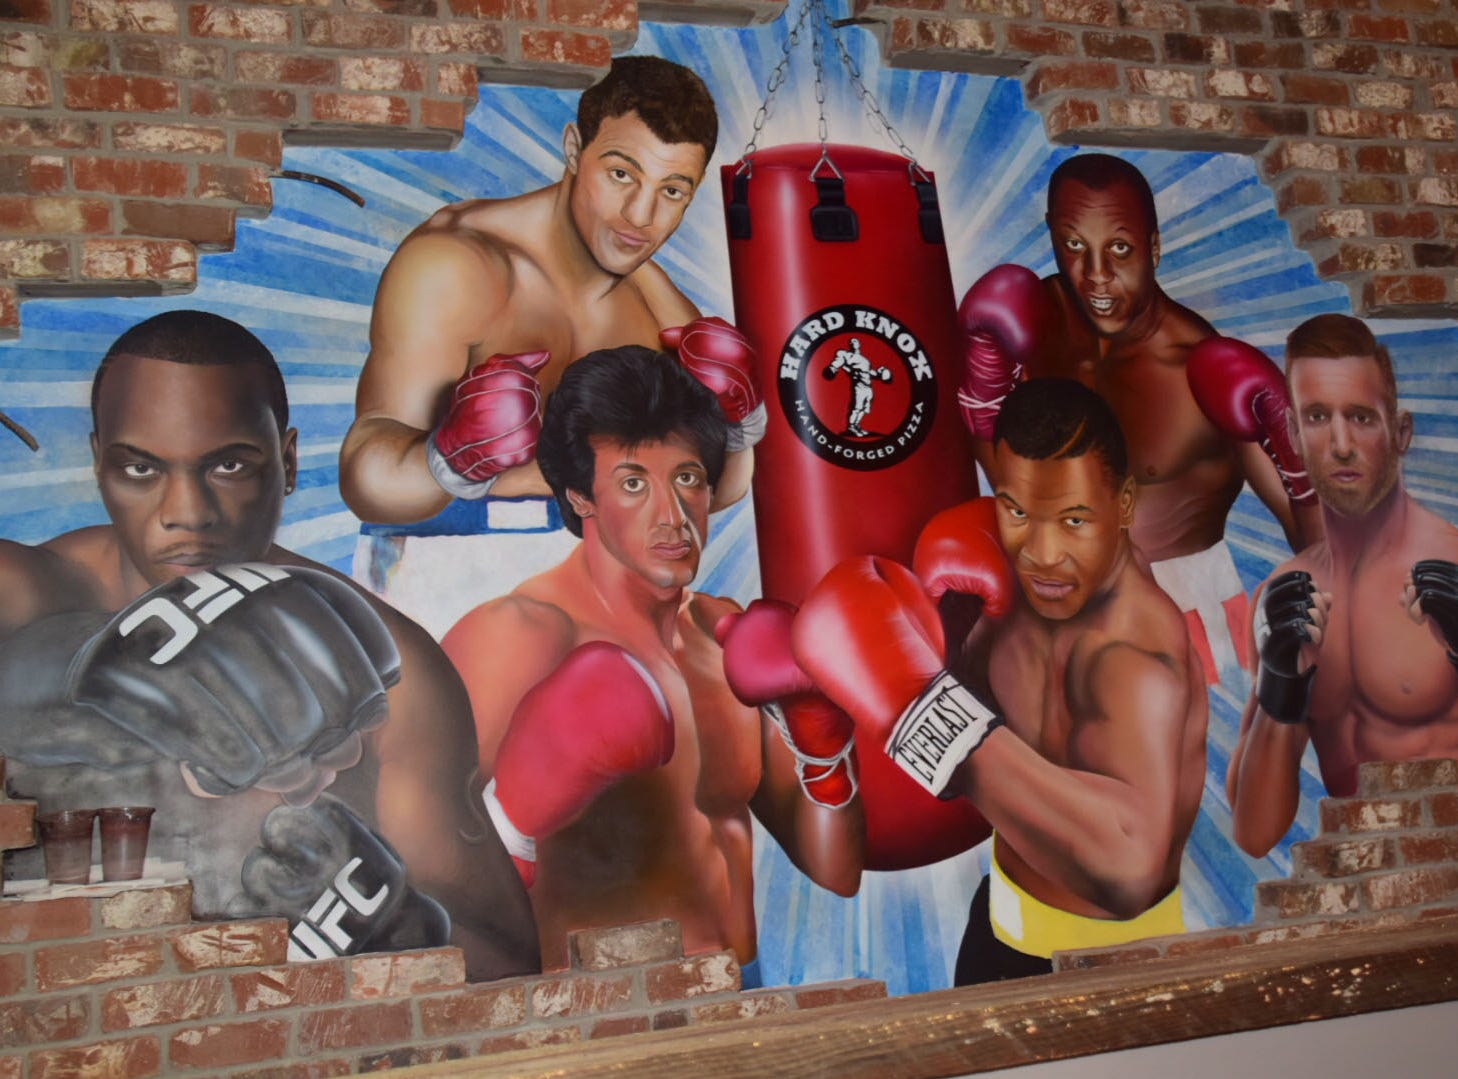 A mural depicting famous boxers is underway at Hard Knox Pizza. Each pizza is named after a boxer.